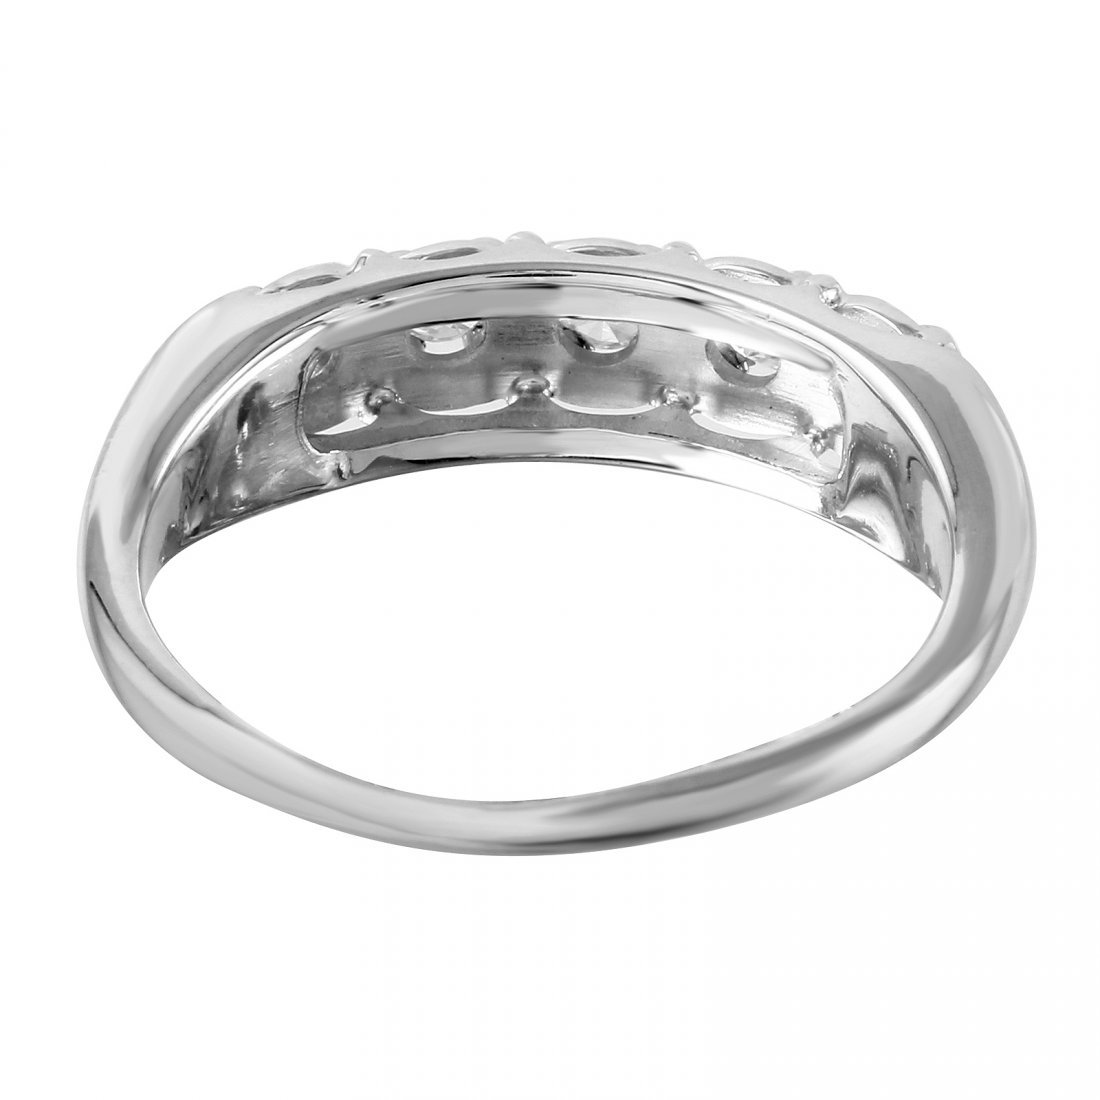 14K White Gold Diamond Wedding Band - 3